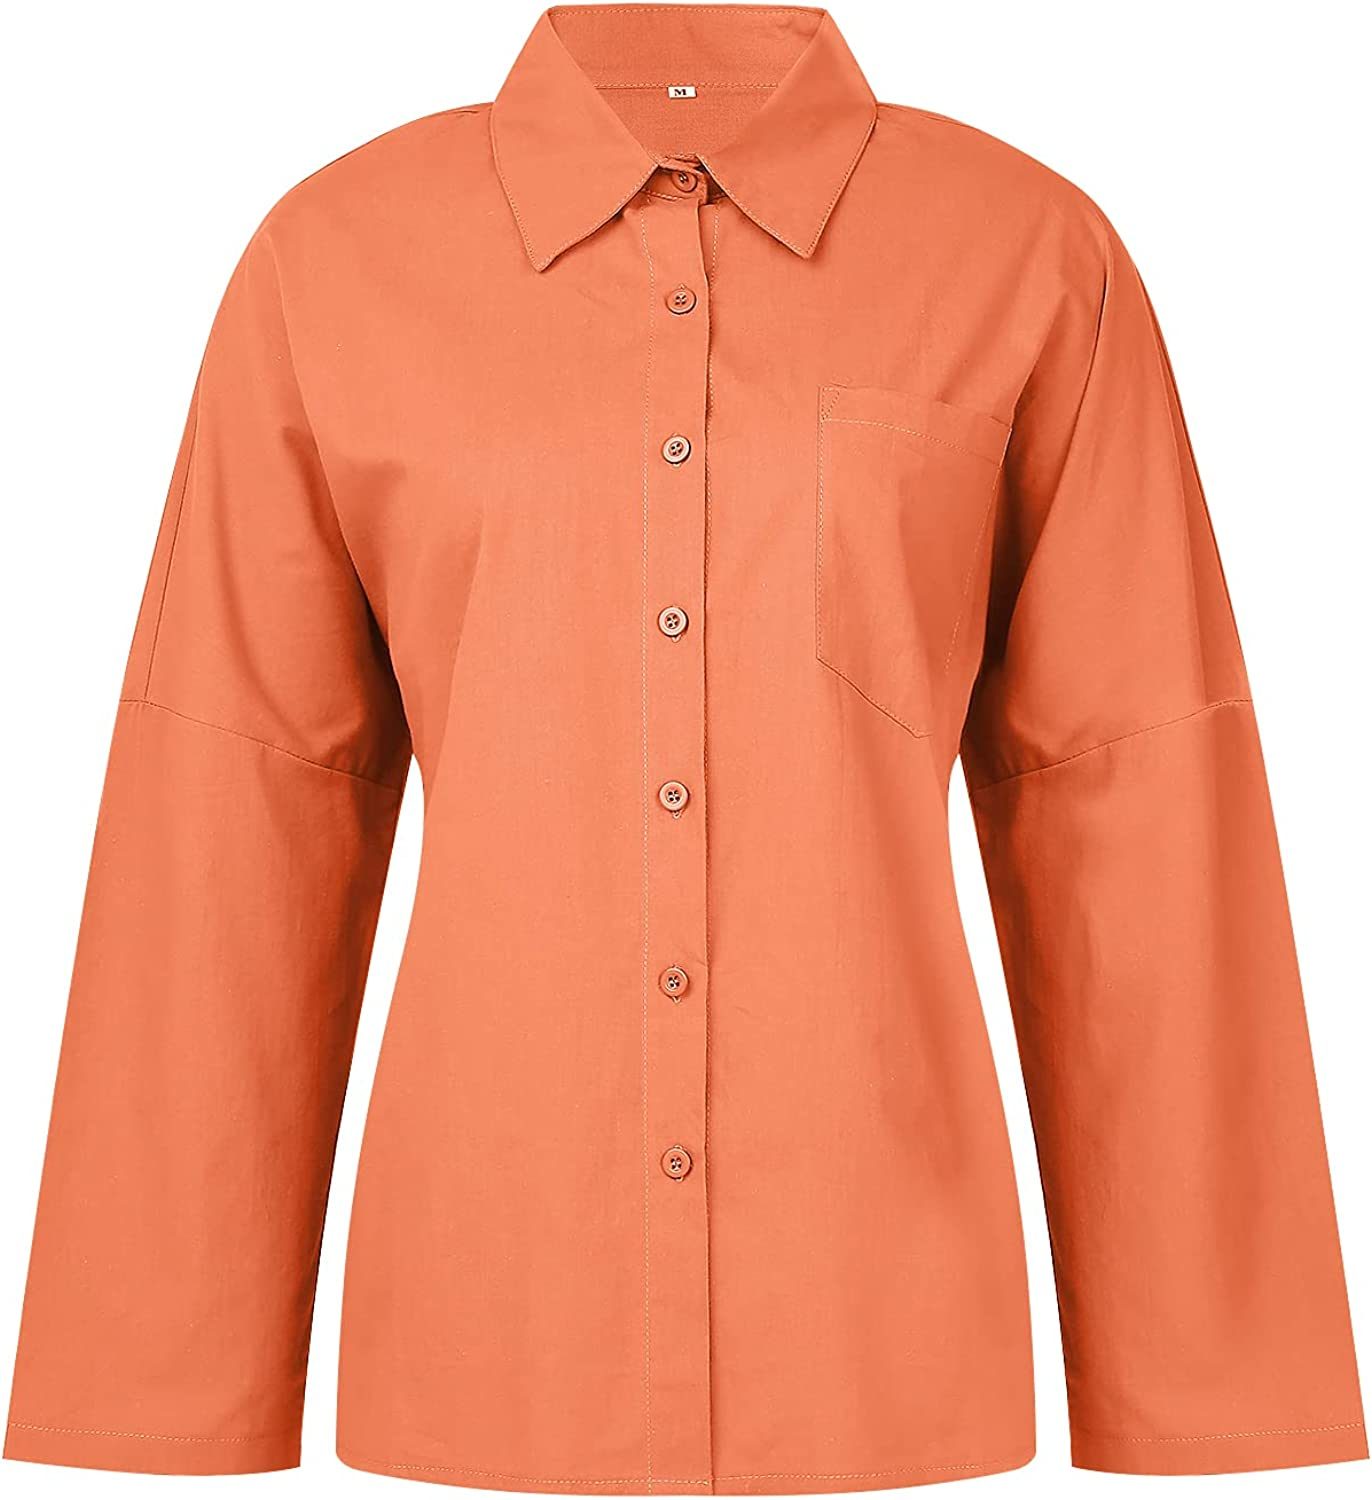 Women's Casual Button Down Shirts Lapel Collar Solid Color Long Sleeve Cotton Linen Shirts Loose Fit Blouses Tops